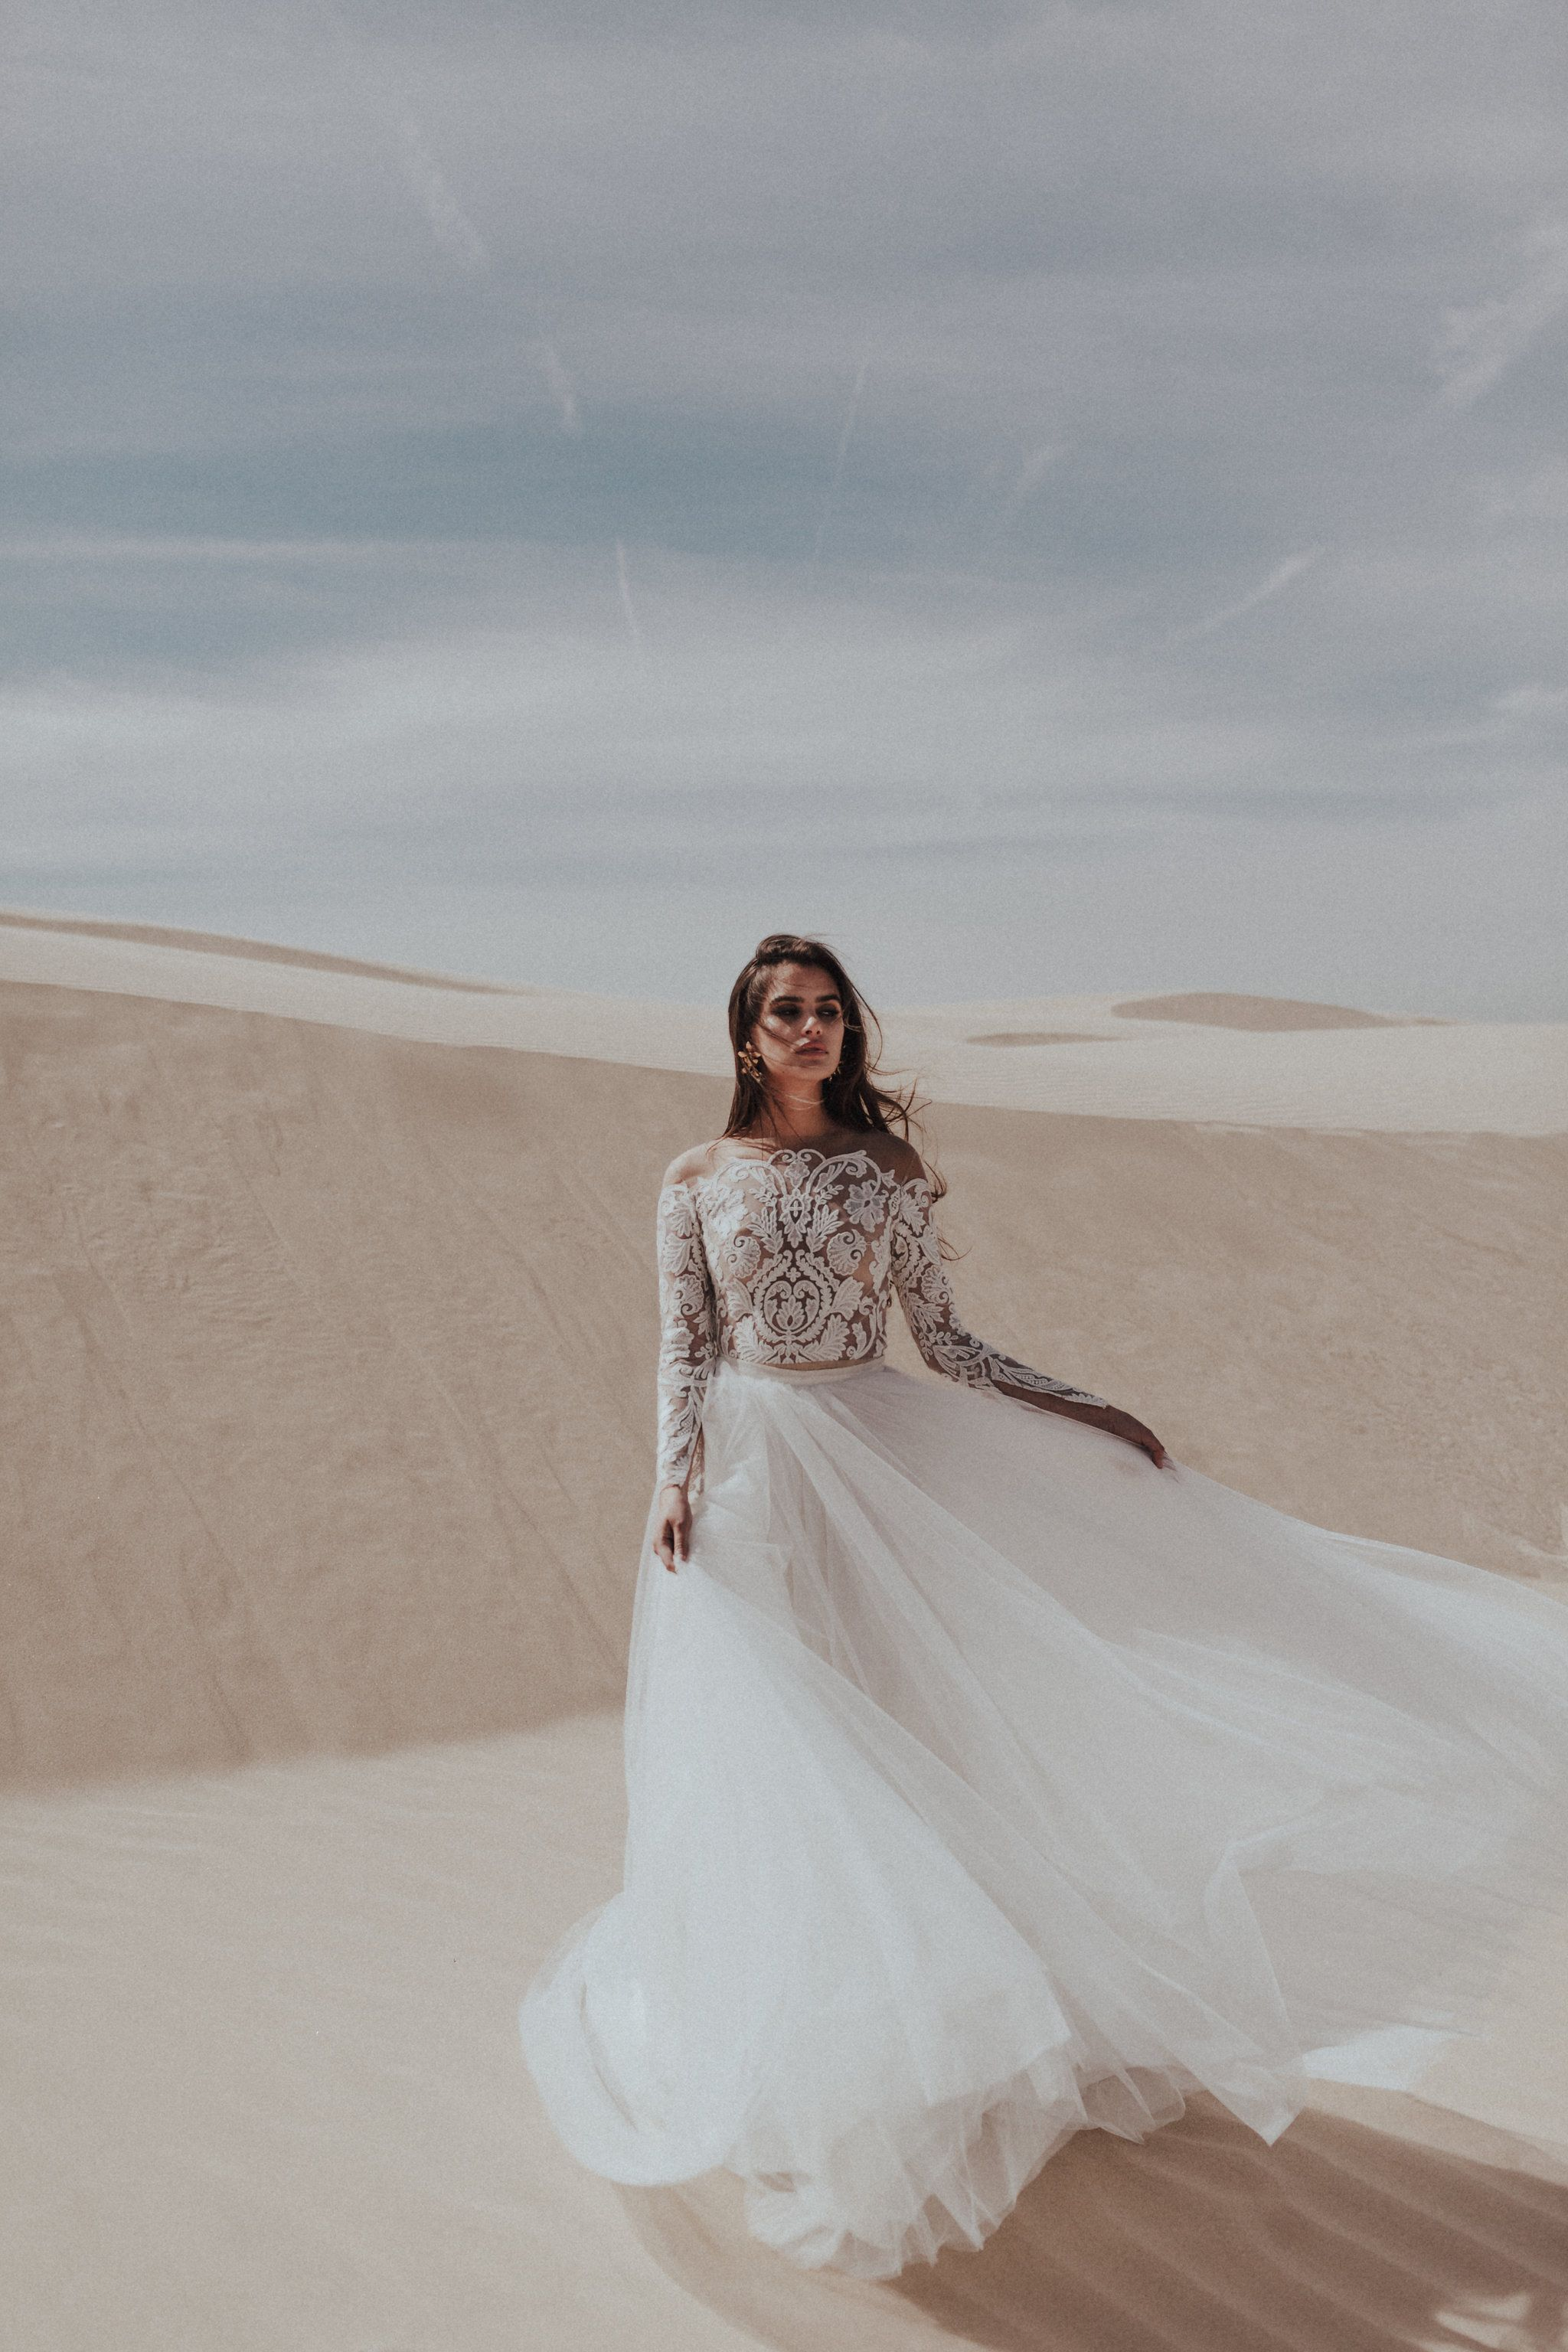 Sarah Seven Wedding dress separates off the shoulder wedding gown